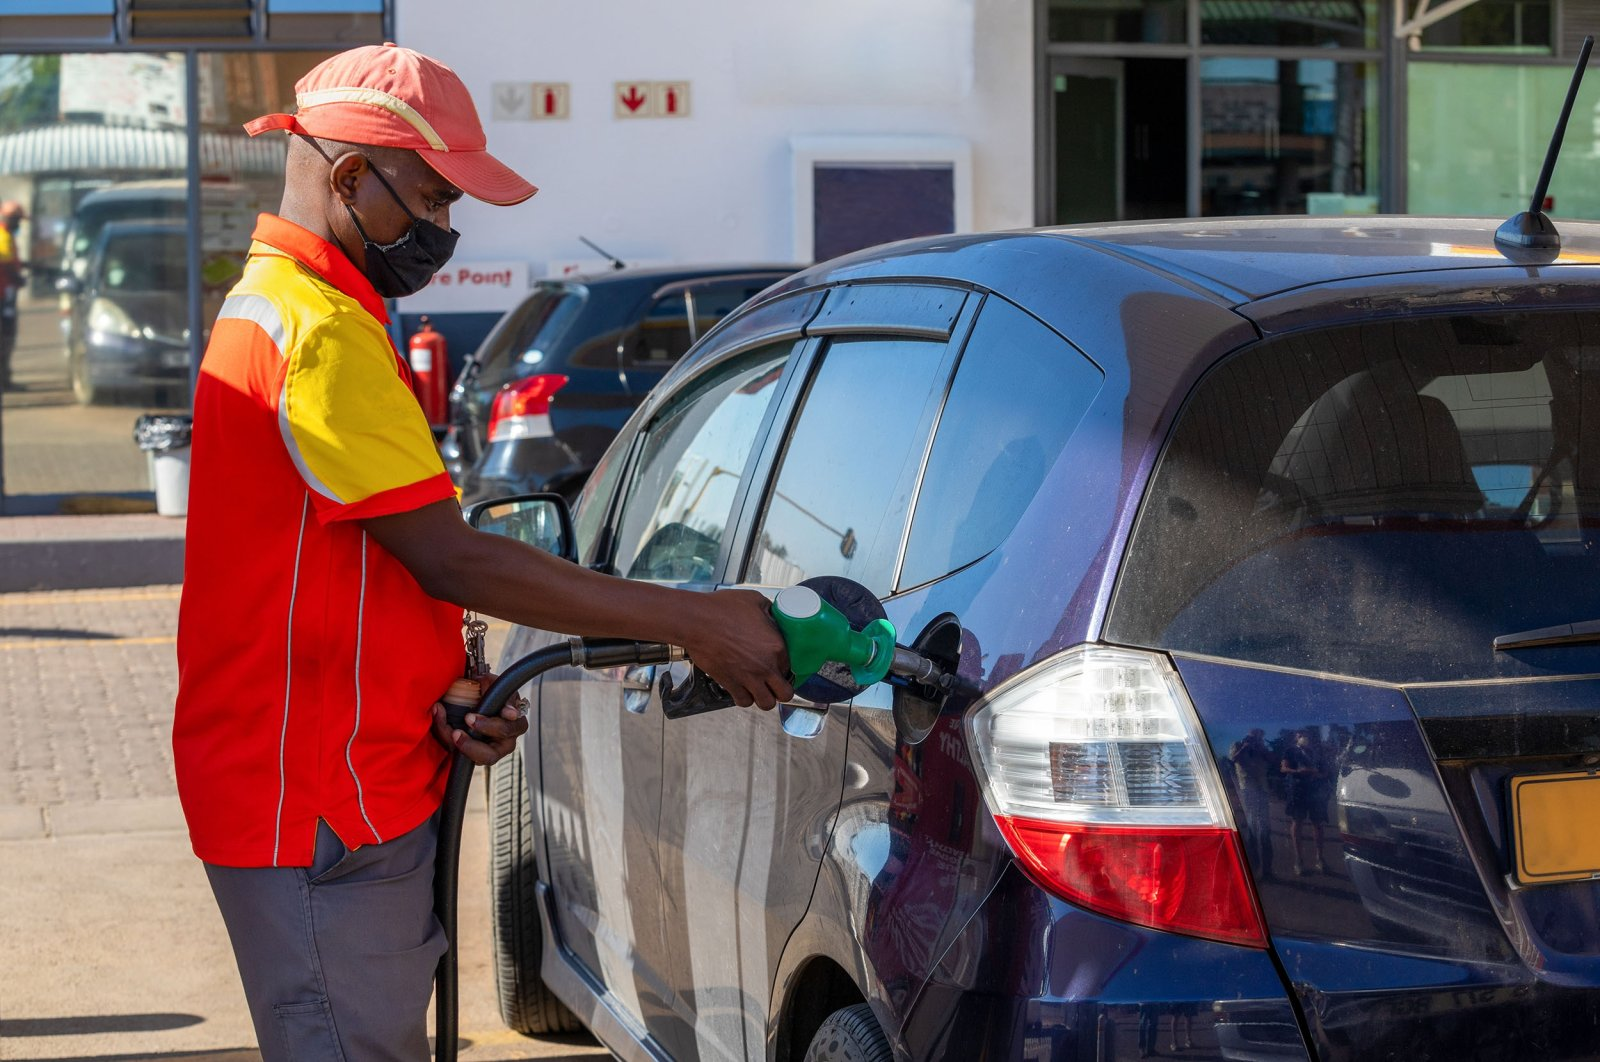 African petrol attendant at a gas station in Botswana. (Shutterstock Photo)